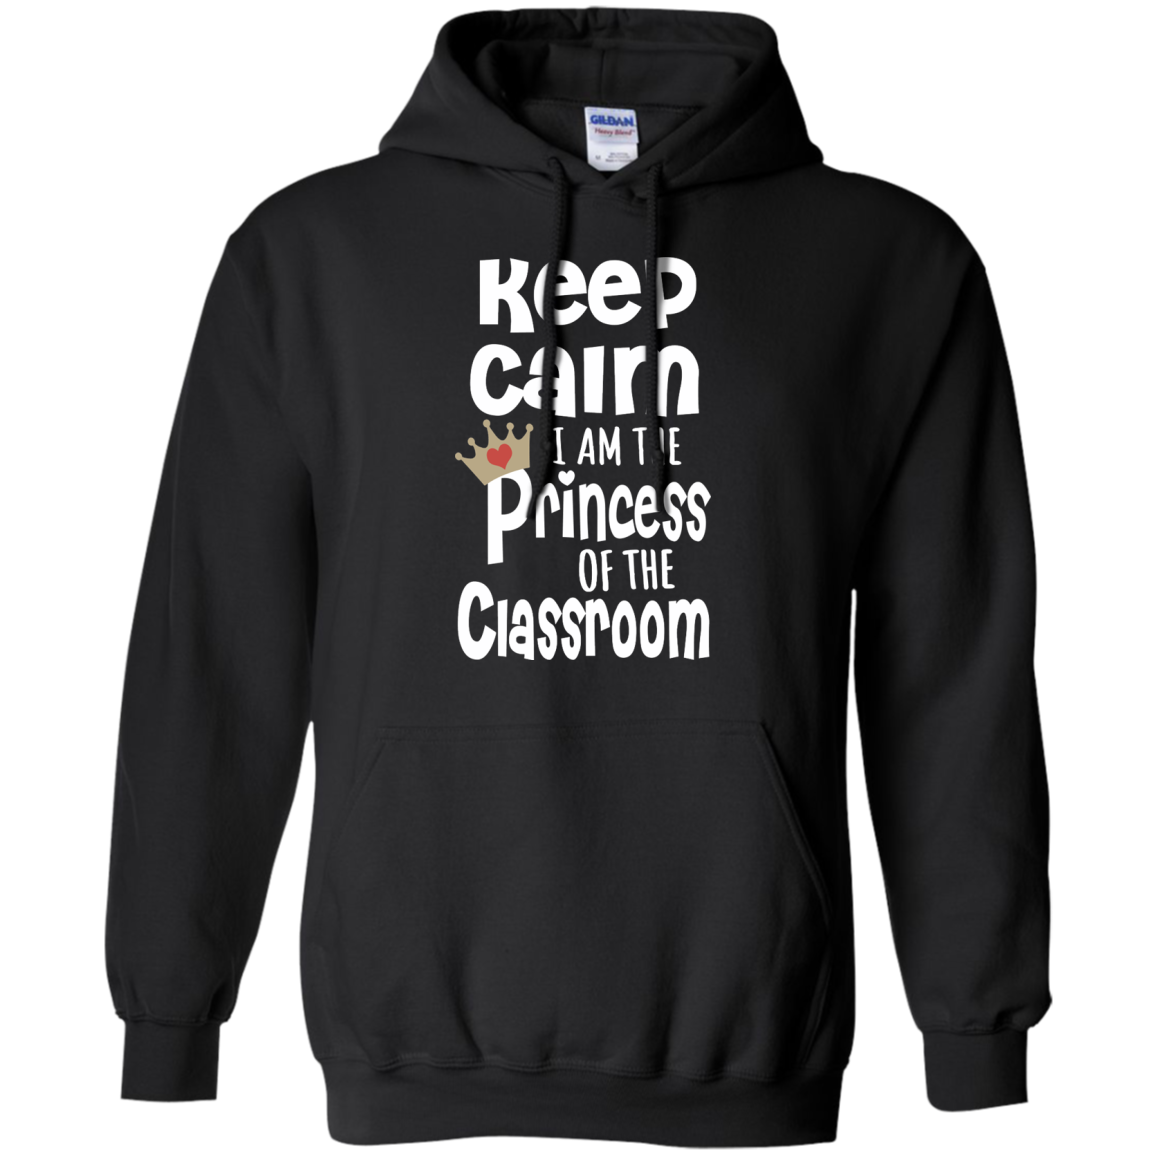 Keep Calm I am the Princess of the Classroom Pullover Hoodie 8 oz